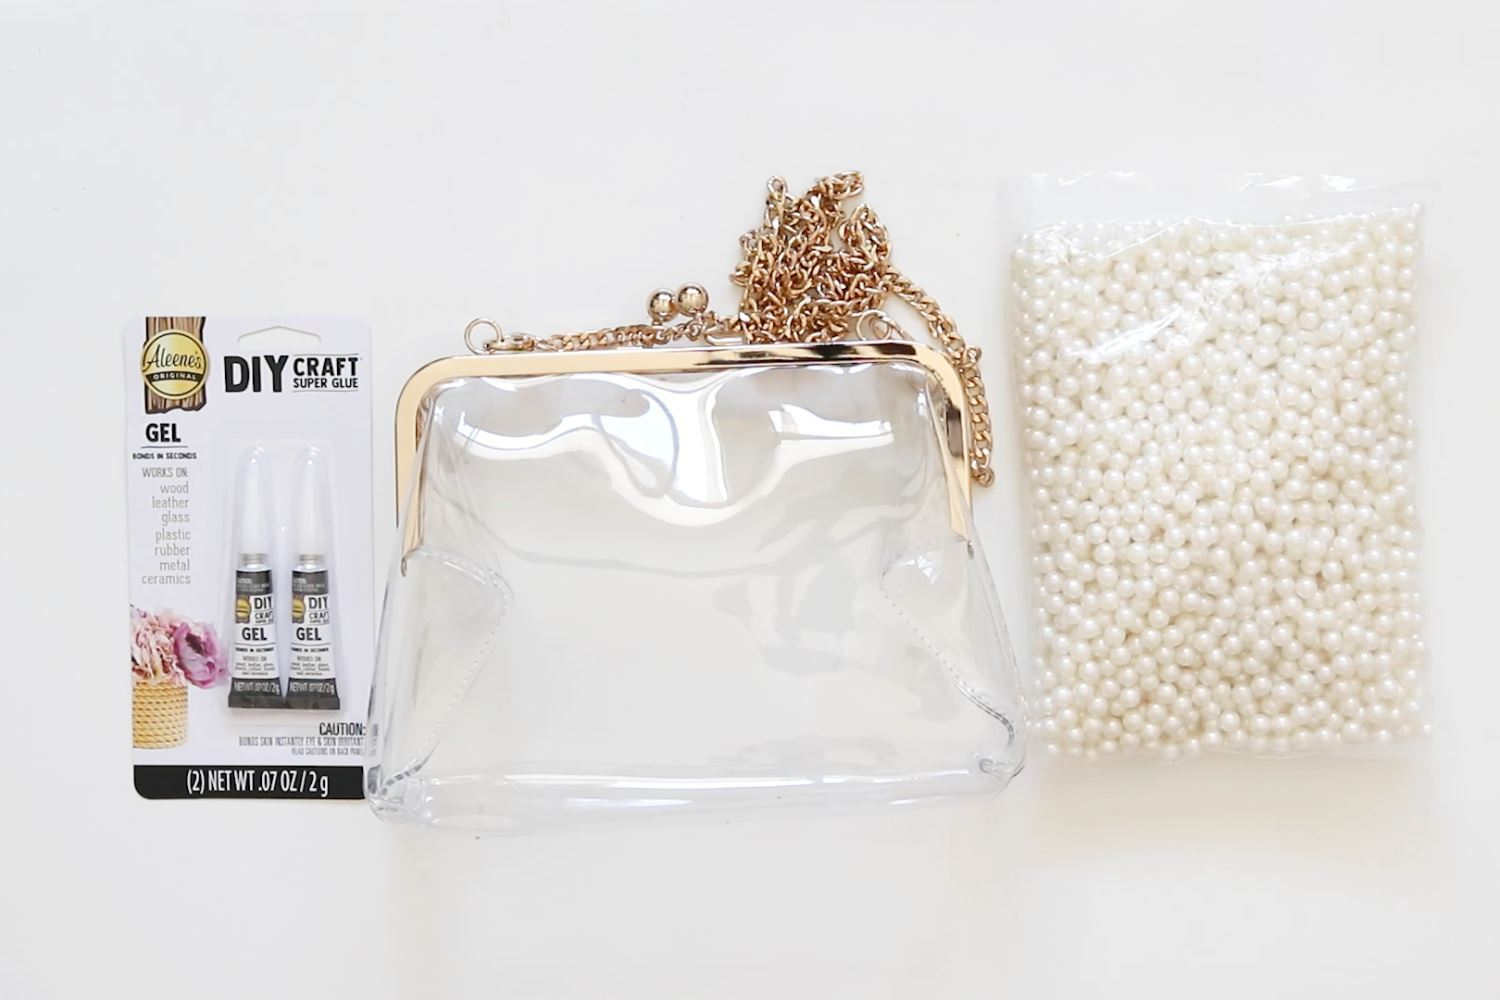 Clear handbag makeover supplies